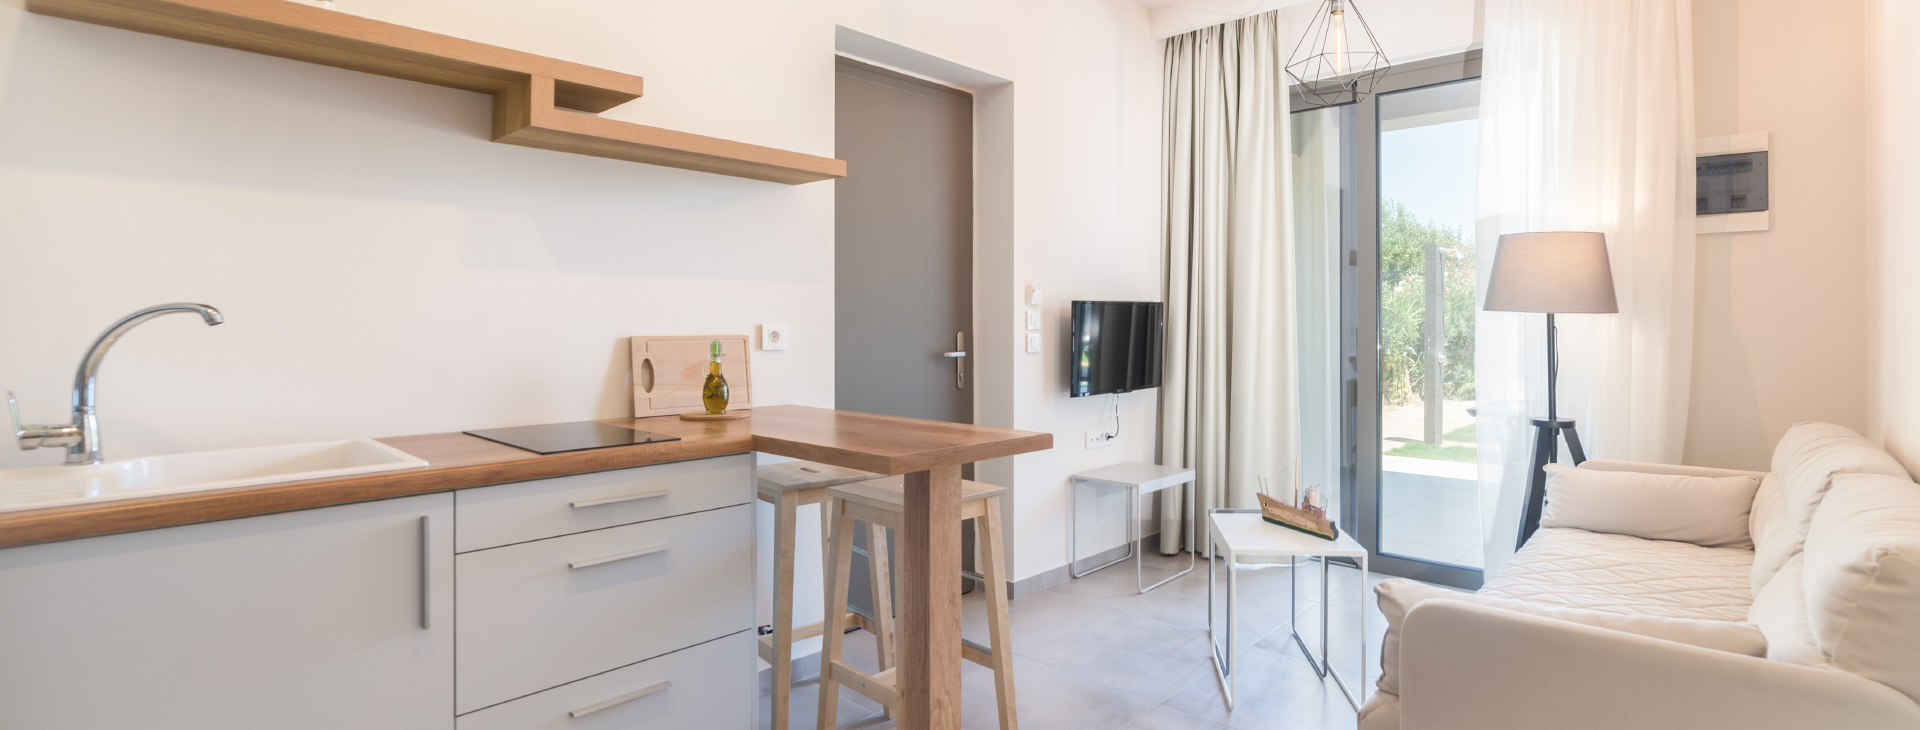 Superior Suite στο Lemonia Accommodations